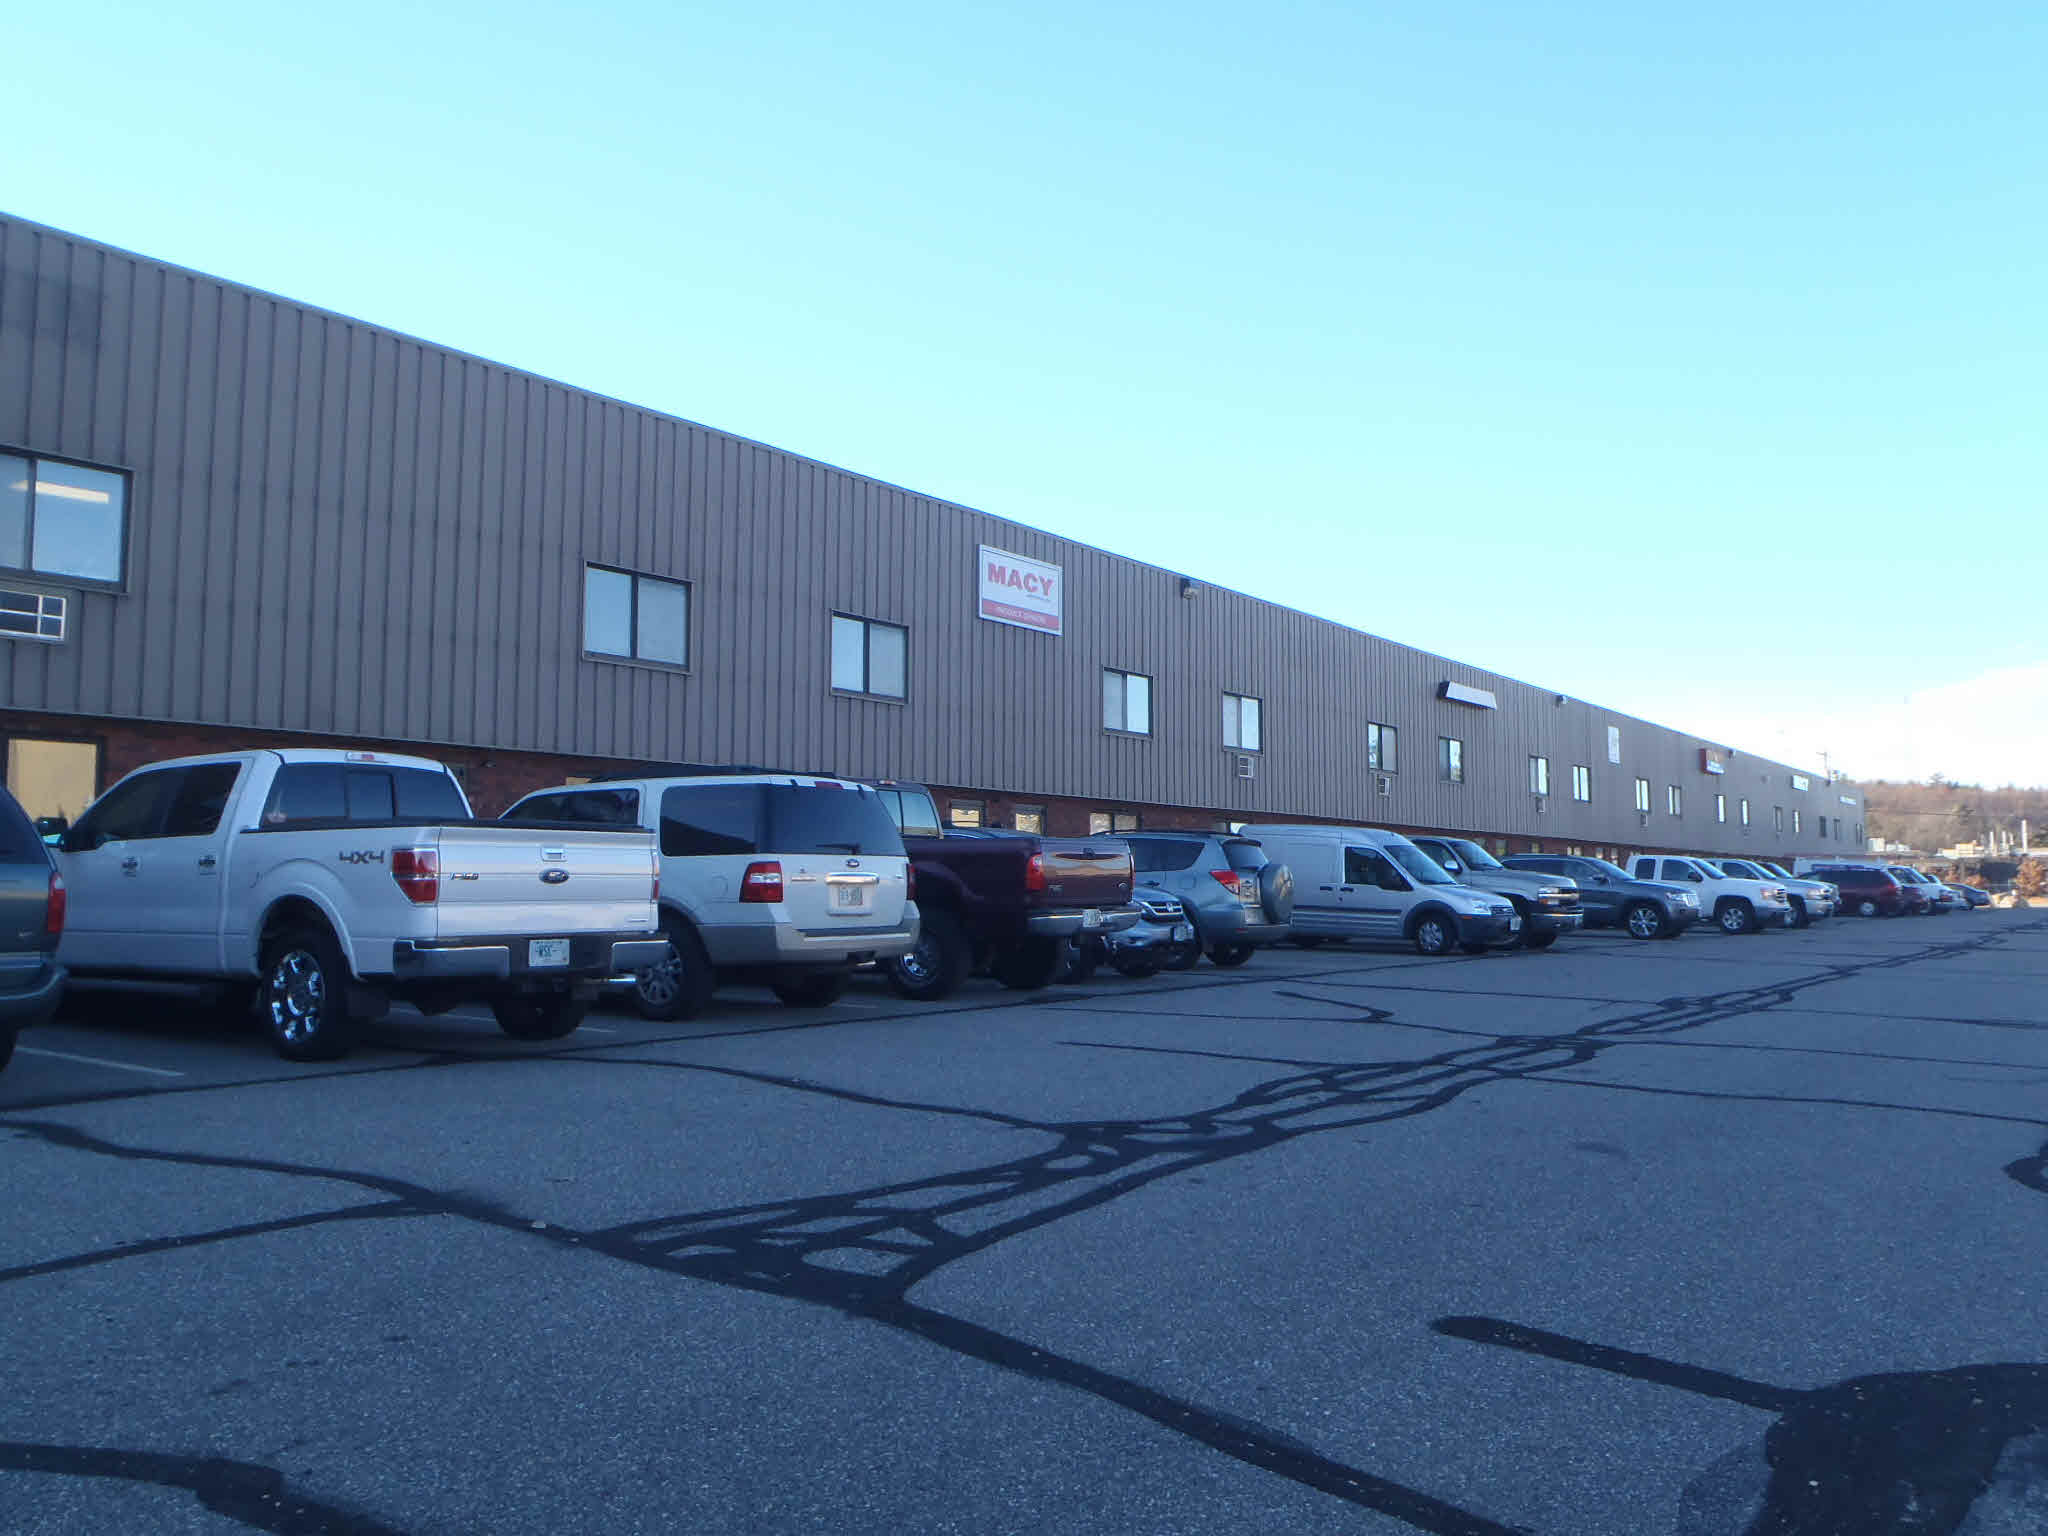 8 Industrial Park Drive, Hooksett, NH - Units 9 & 10 - For Sale